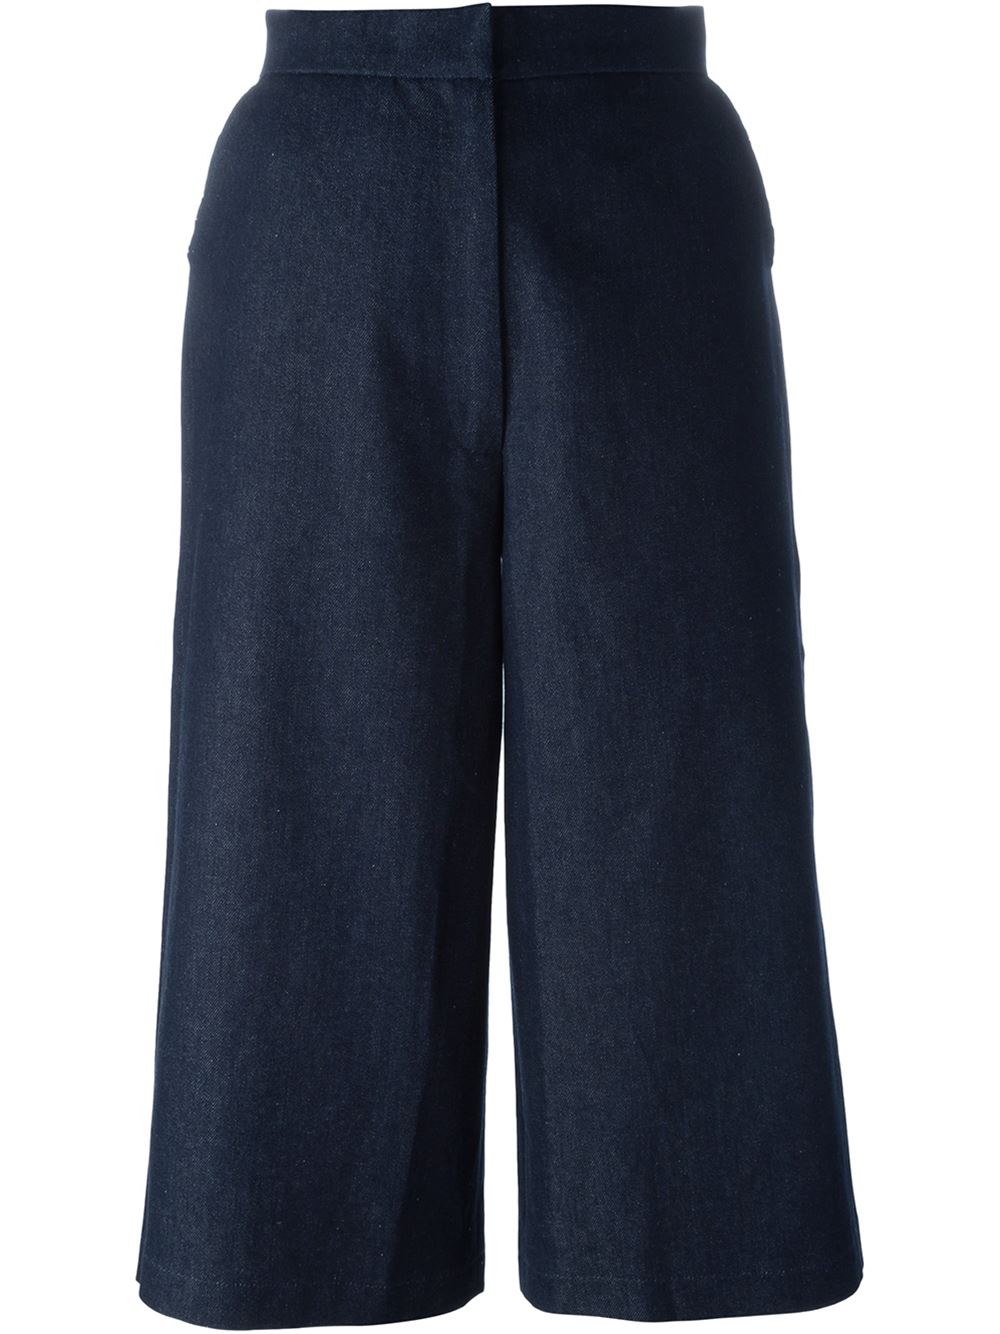 dunkle culottes